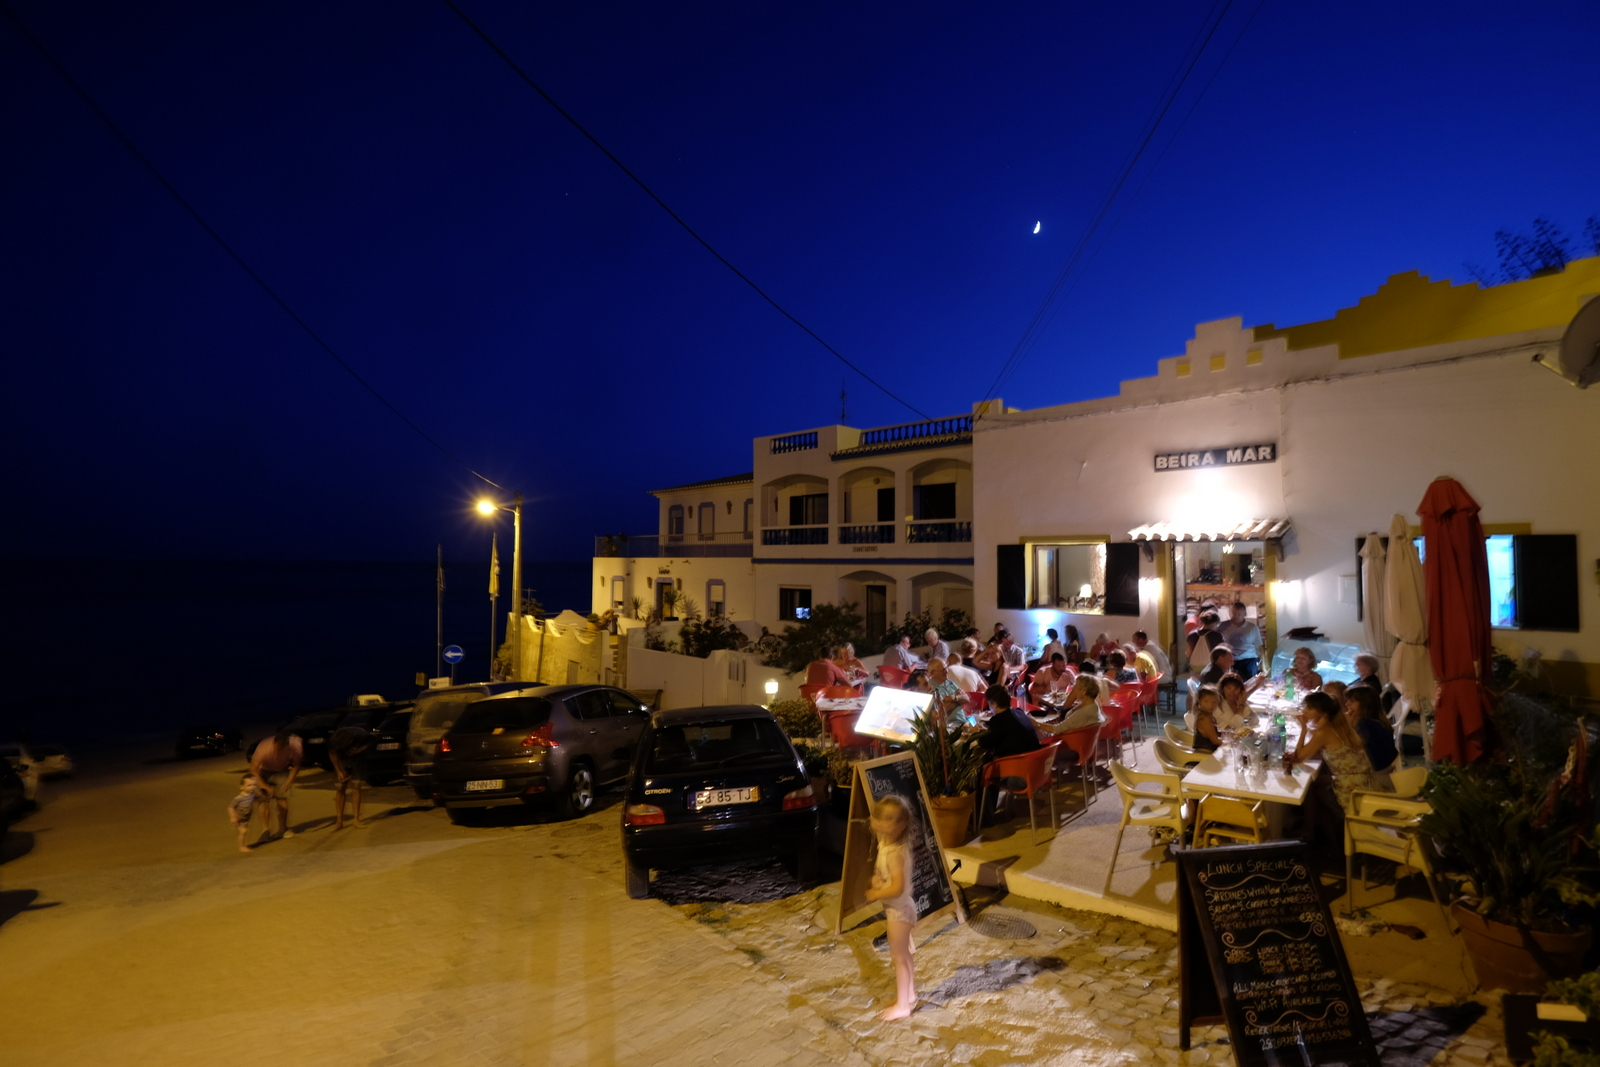 Beira Mar is a lively spot in Burgau, Portugal that serves great, fresh seafood. - JIM BYERS PHOTO